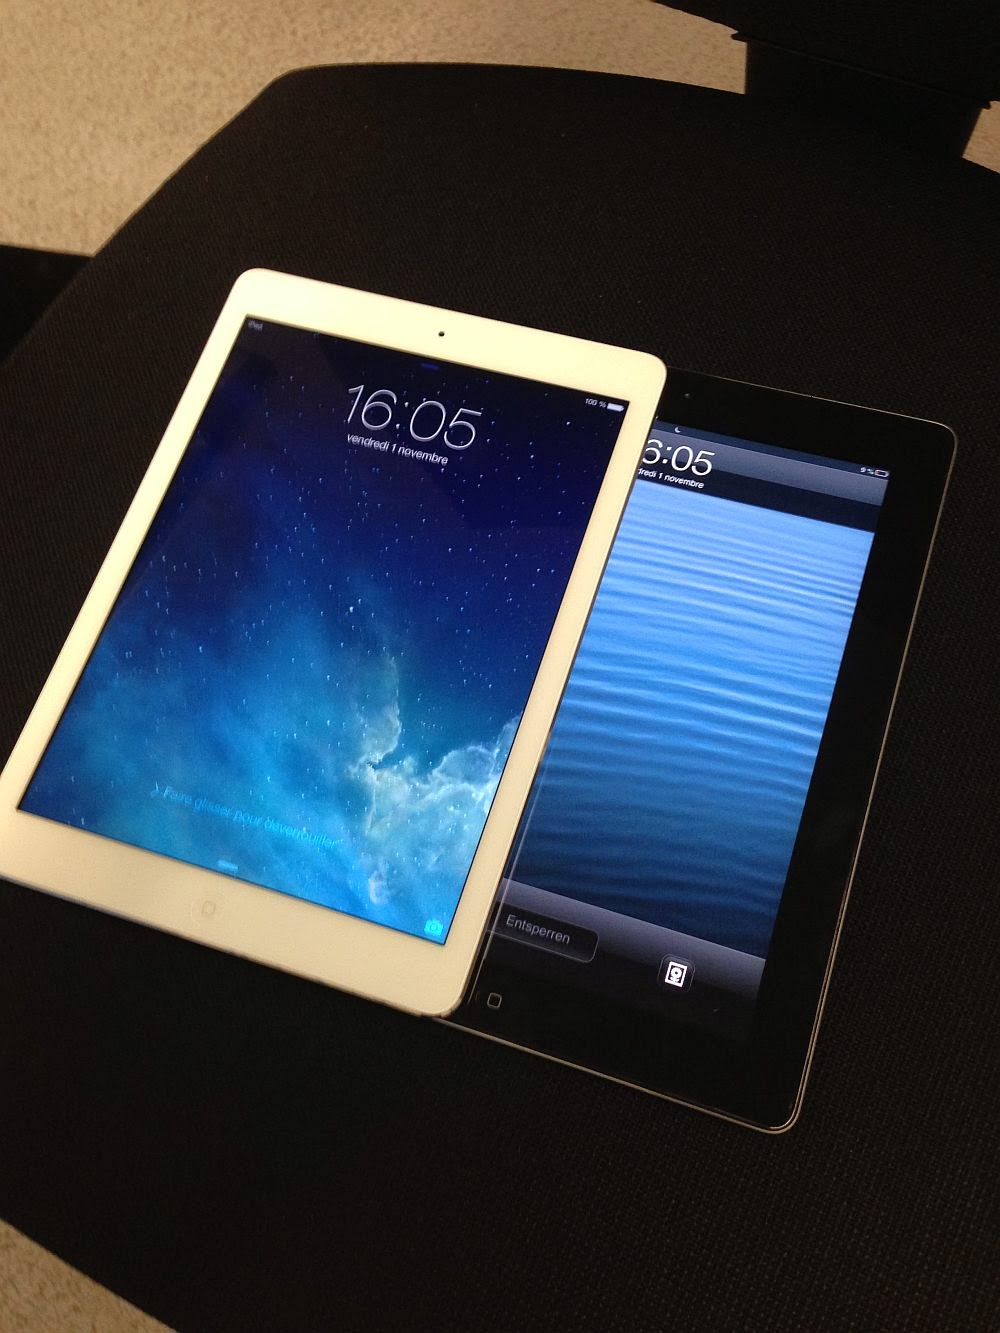 ipad air compared to old ipad